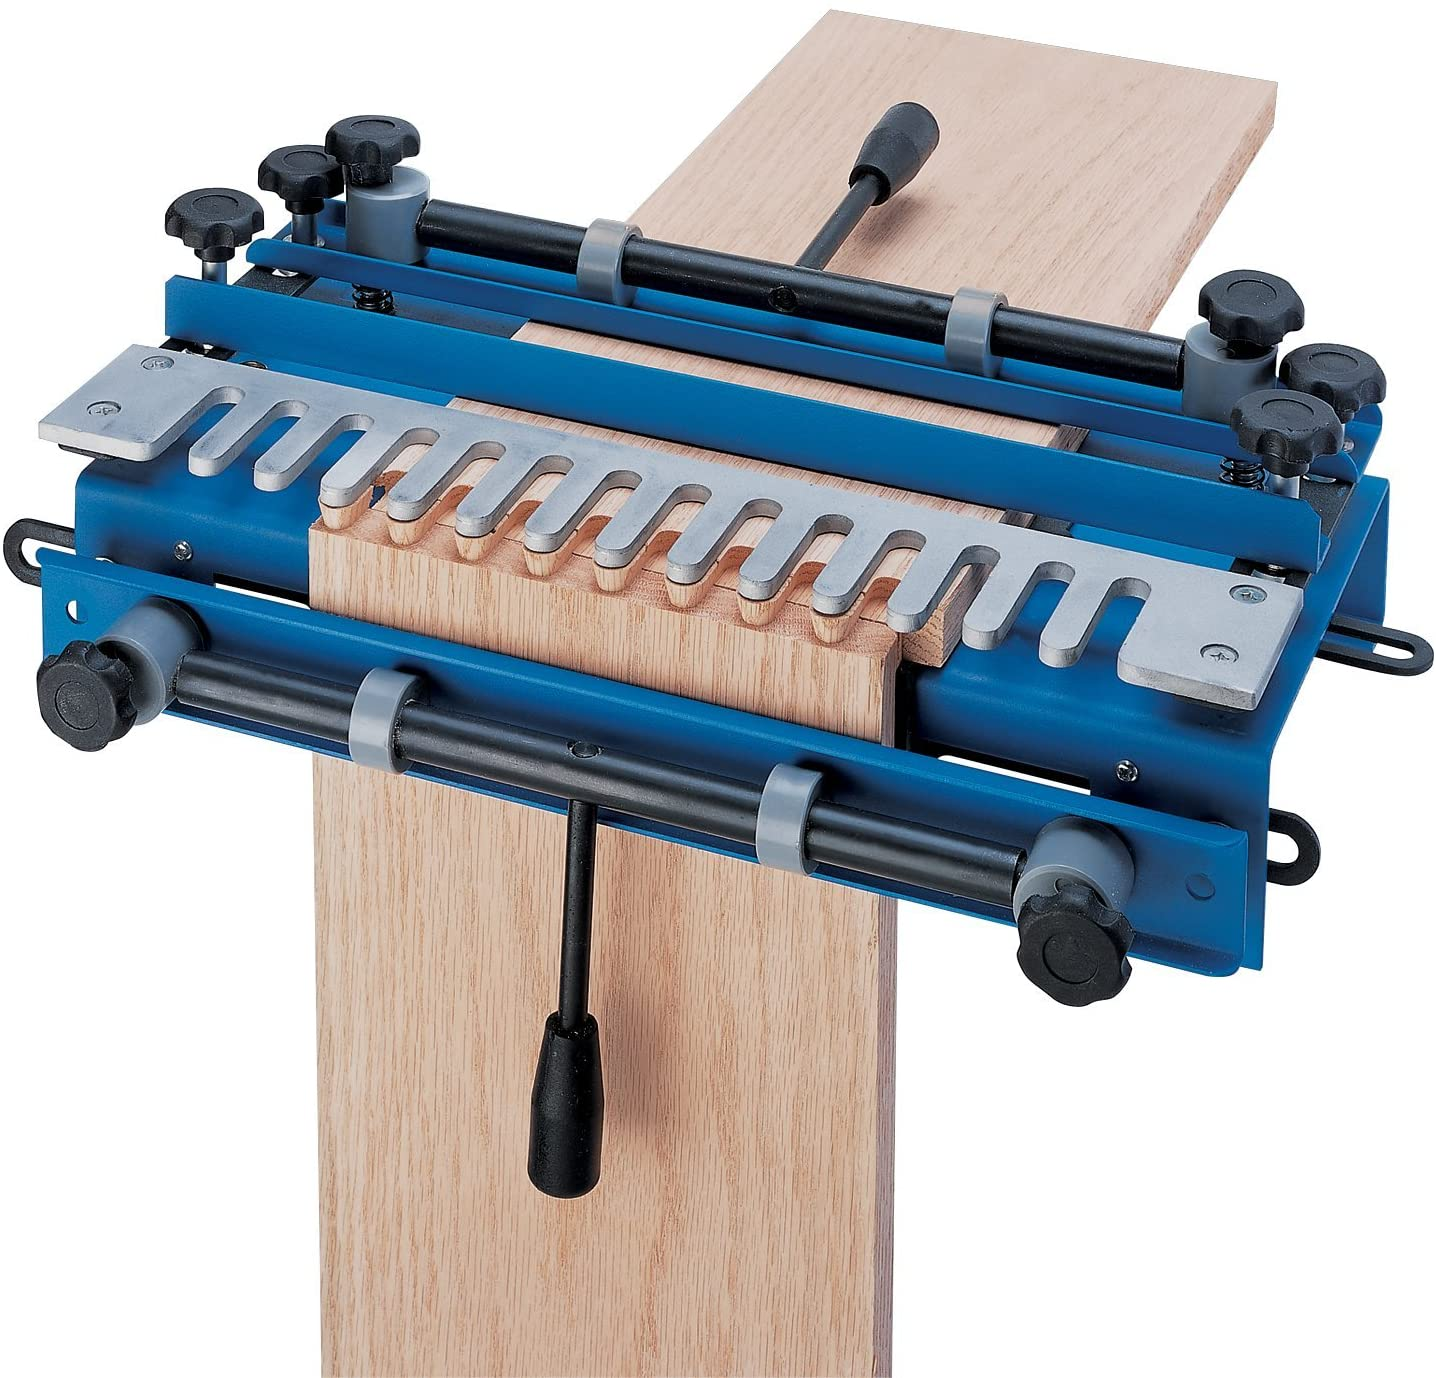 Woodstock Dovetail Jig: D2796 Dovetail Jig with Aluminum Template